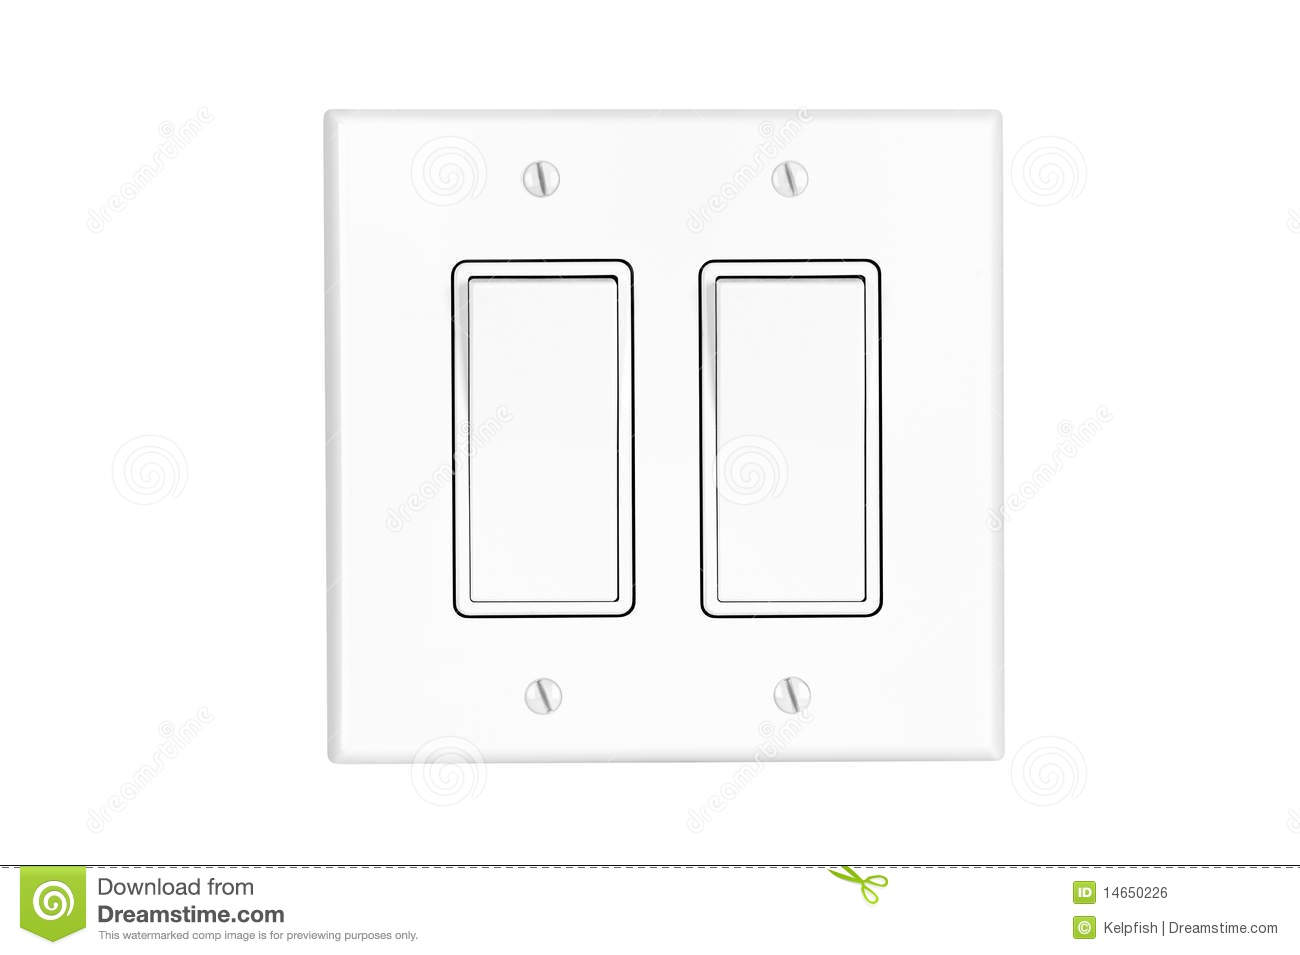 Dual light switch on white stock photo. Image of supply - 14650226